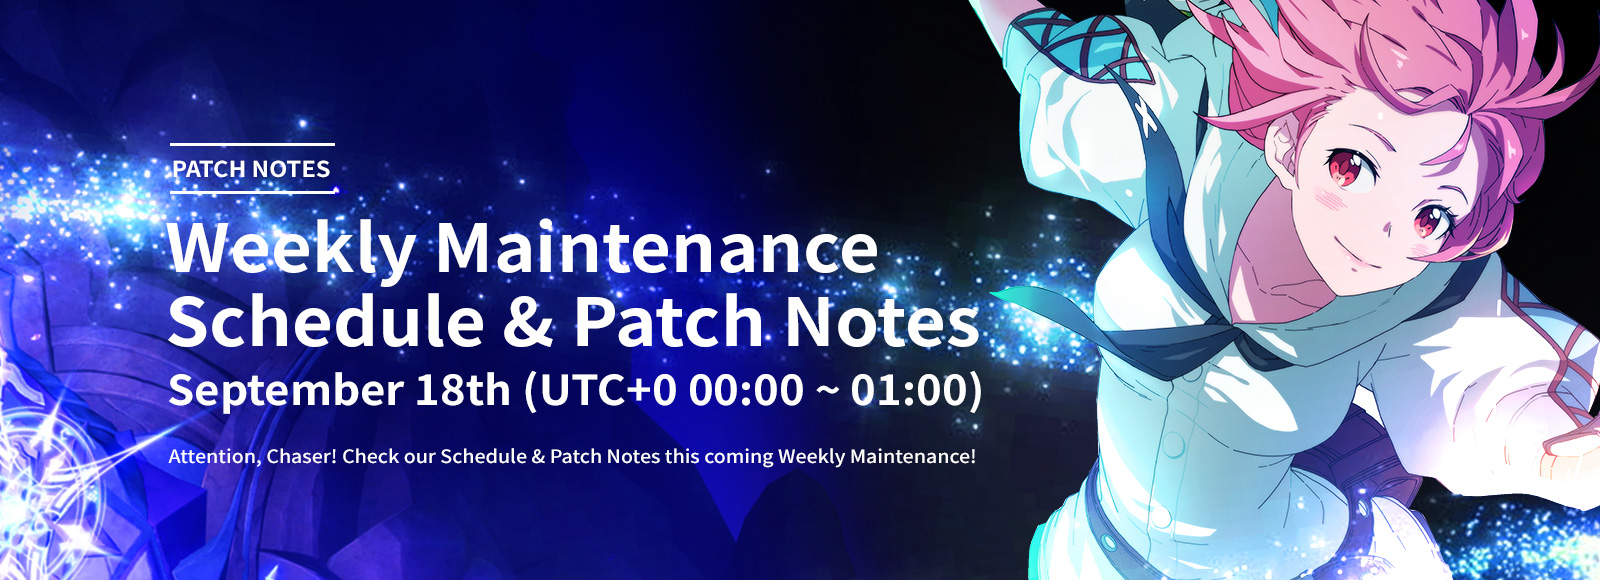 September 18th Weekly Maintenance Schedule & Patch Notes